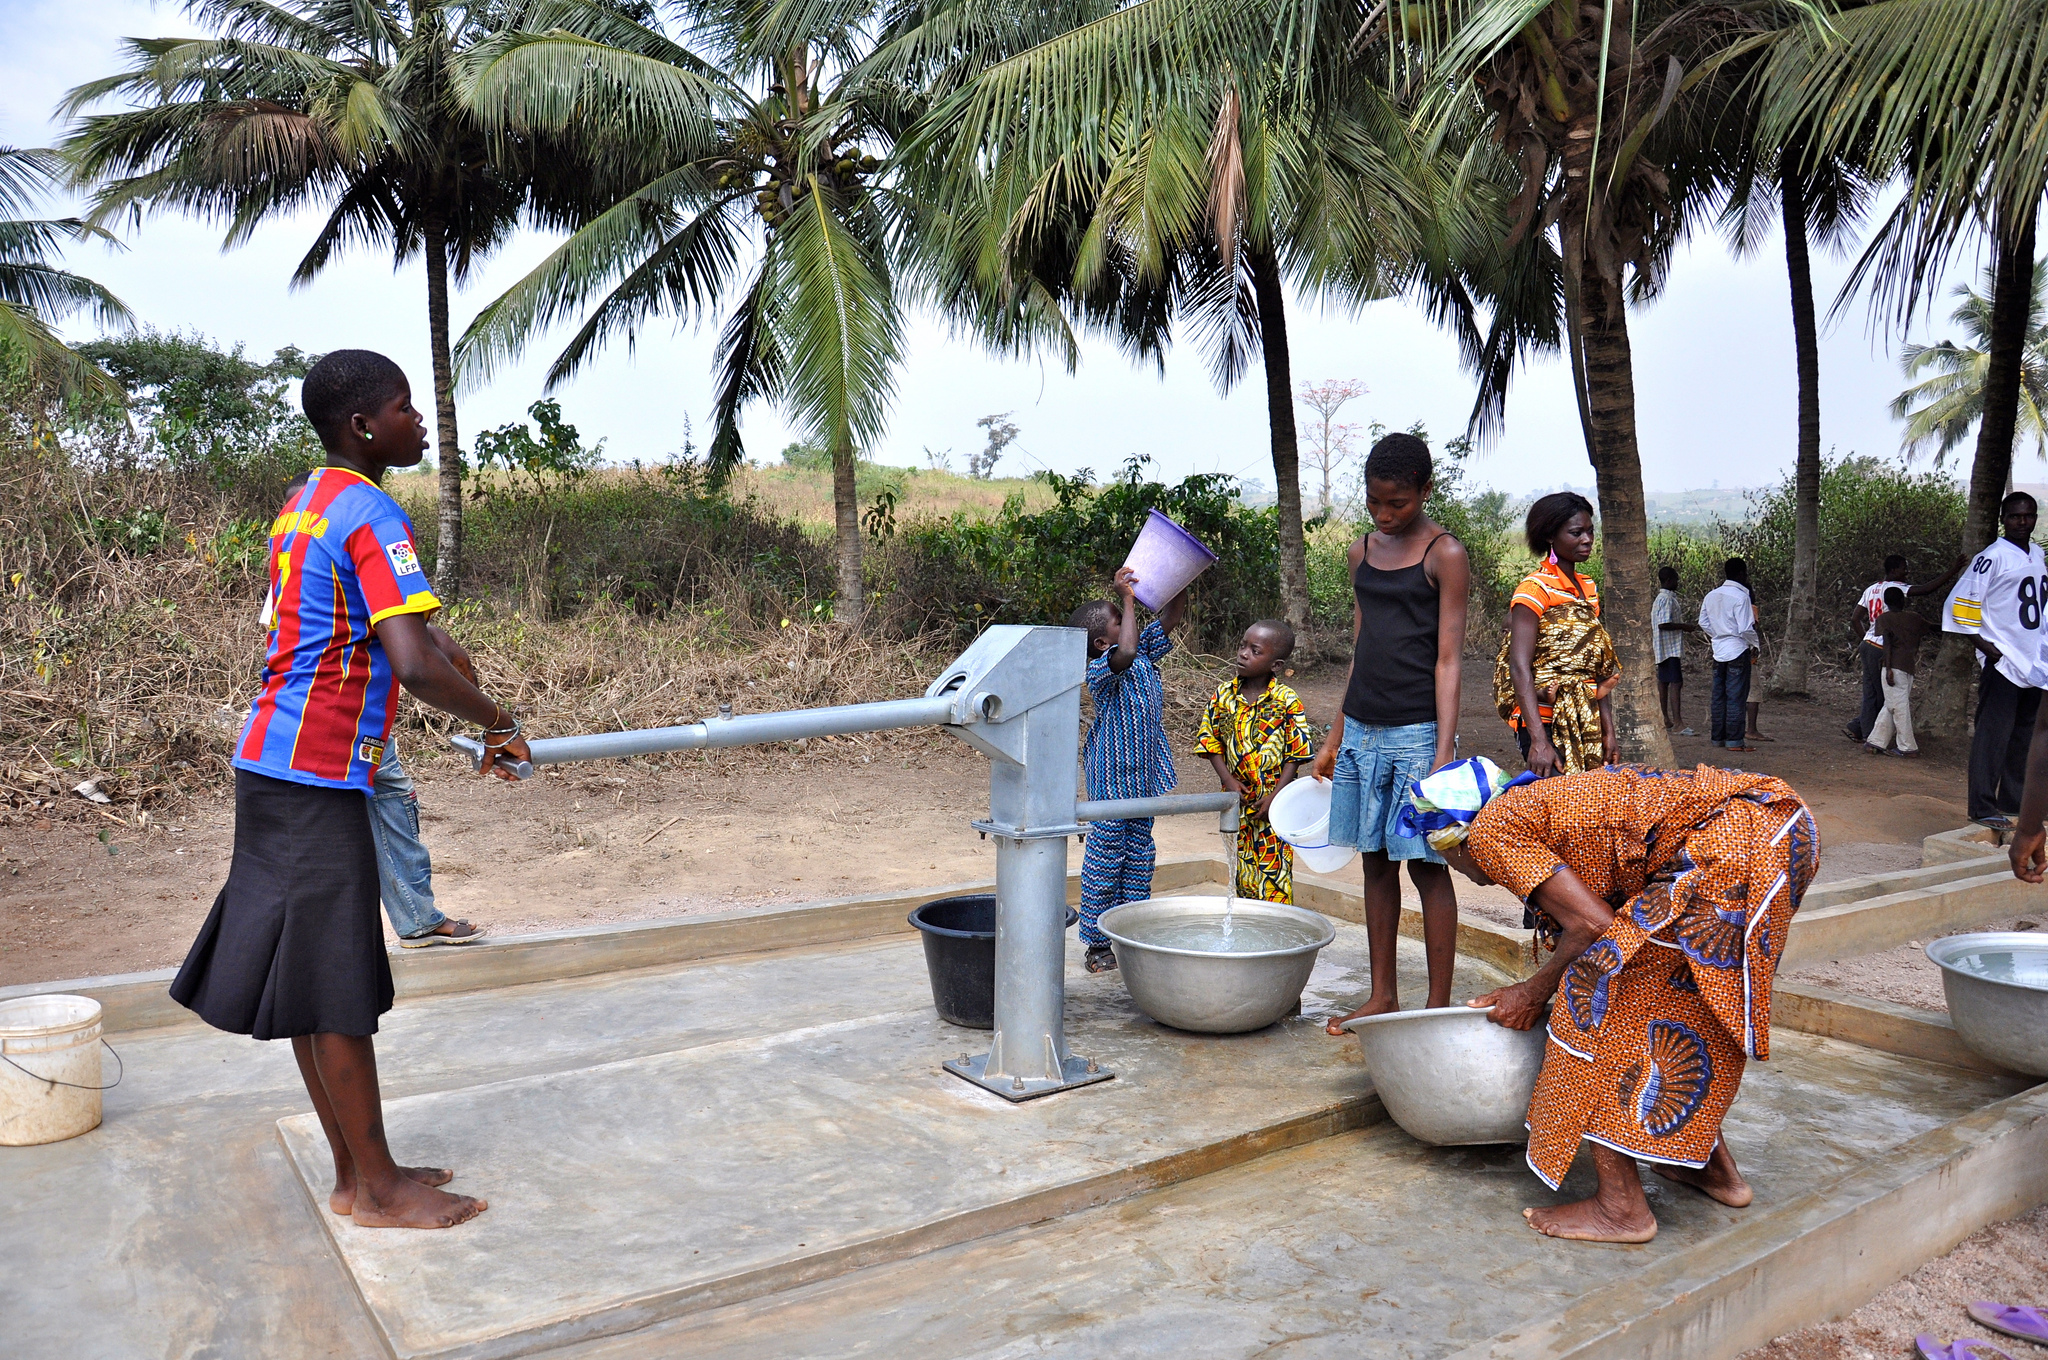 Giving Access to Clean Water around the World